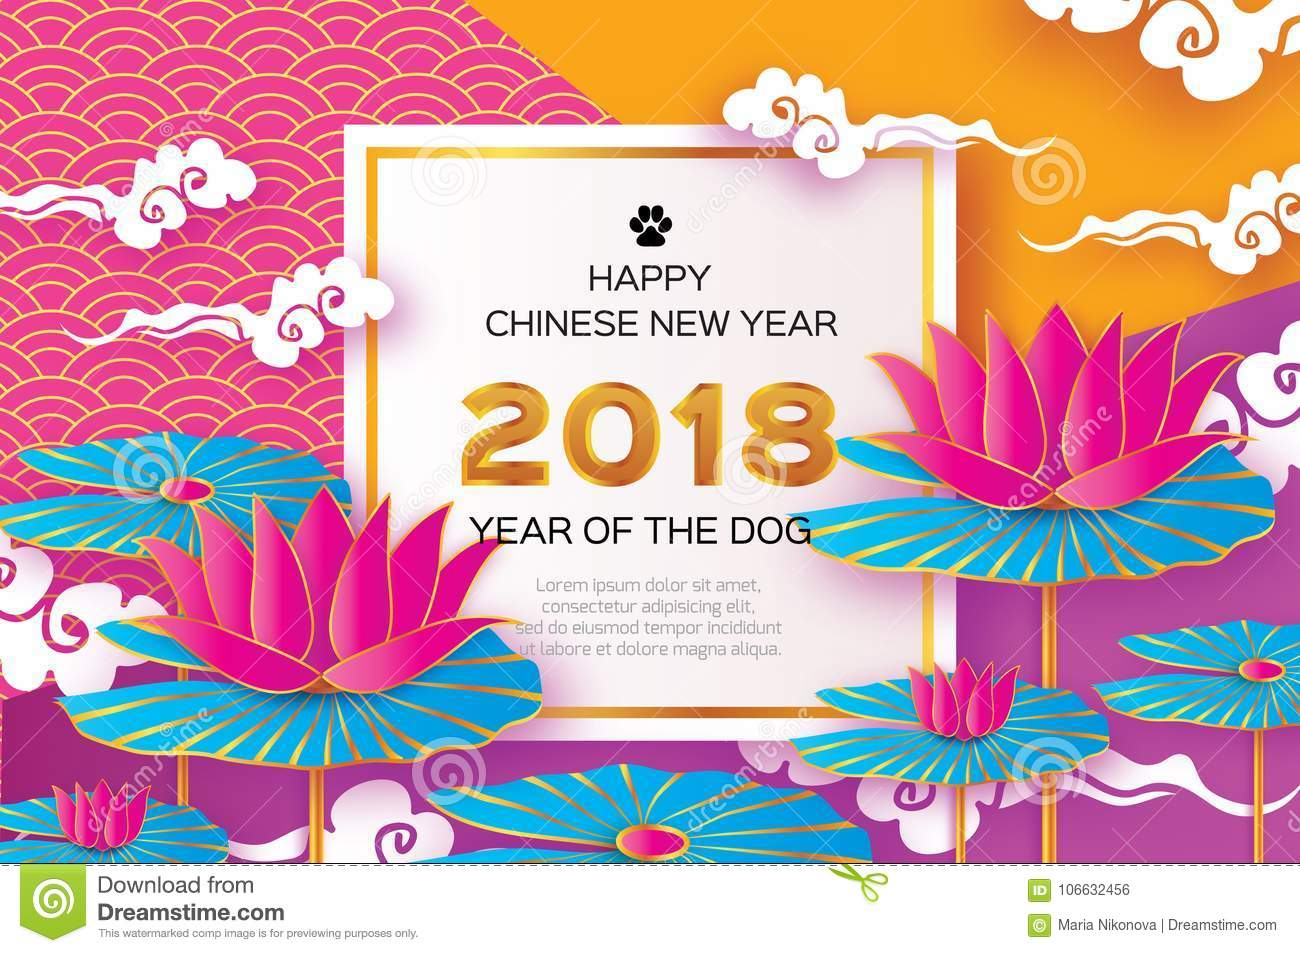 Pink origami waterlily or lotus flower happy chinese new year 2018 pink origami waterlily or lotus flower happy chinese new year 2018 greeting card year of the dog text square frame izmirmasajfo